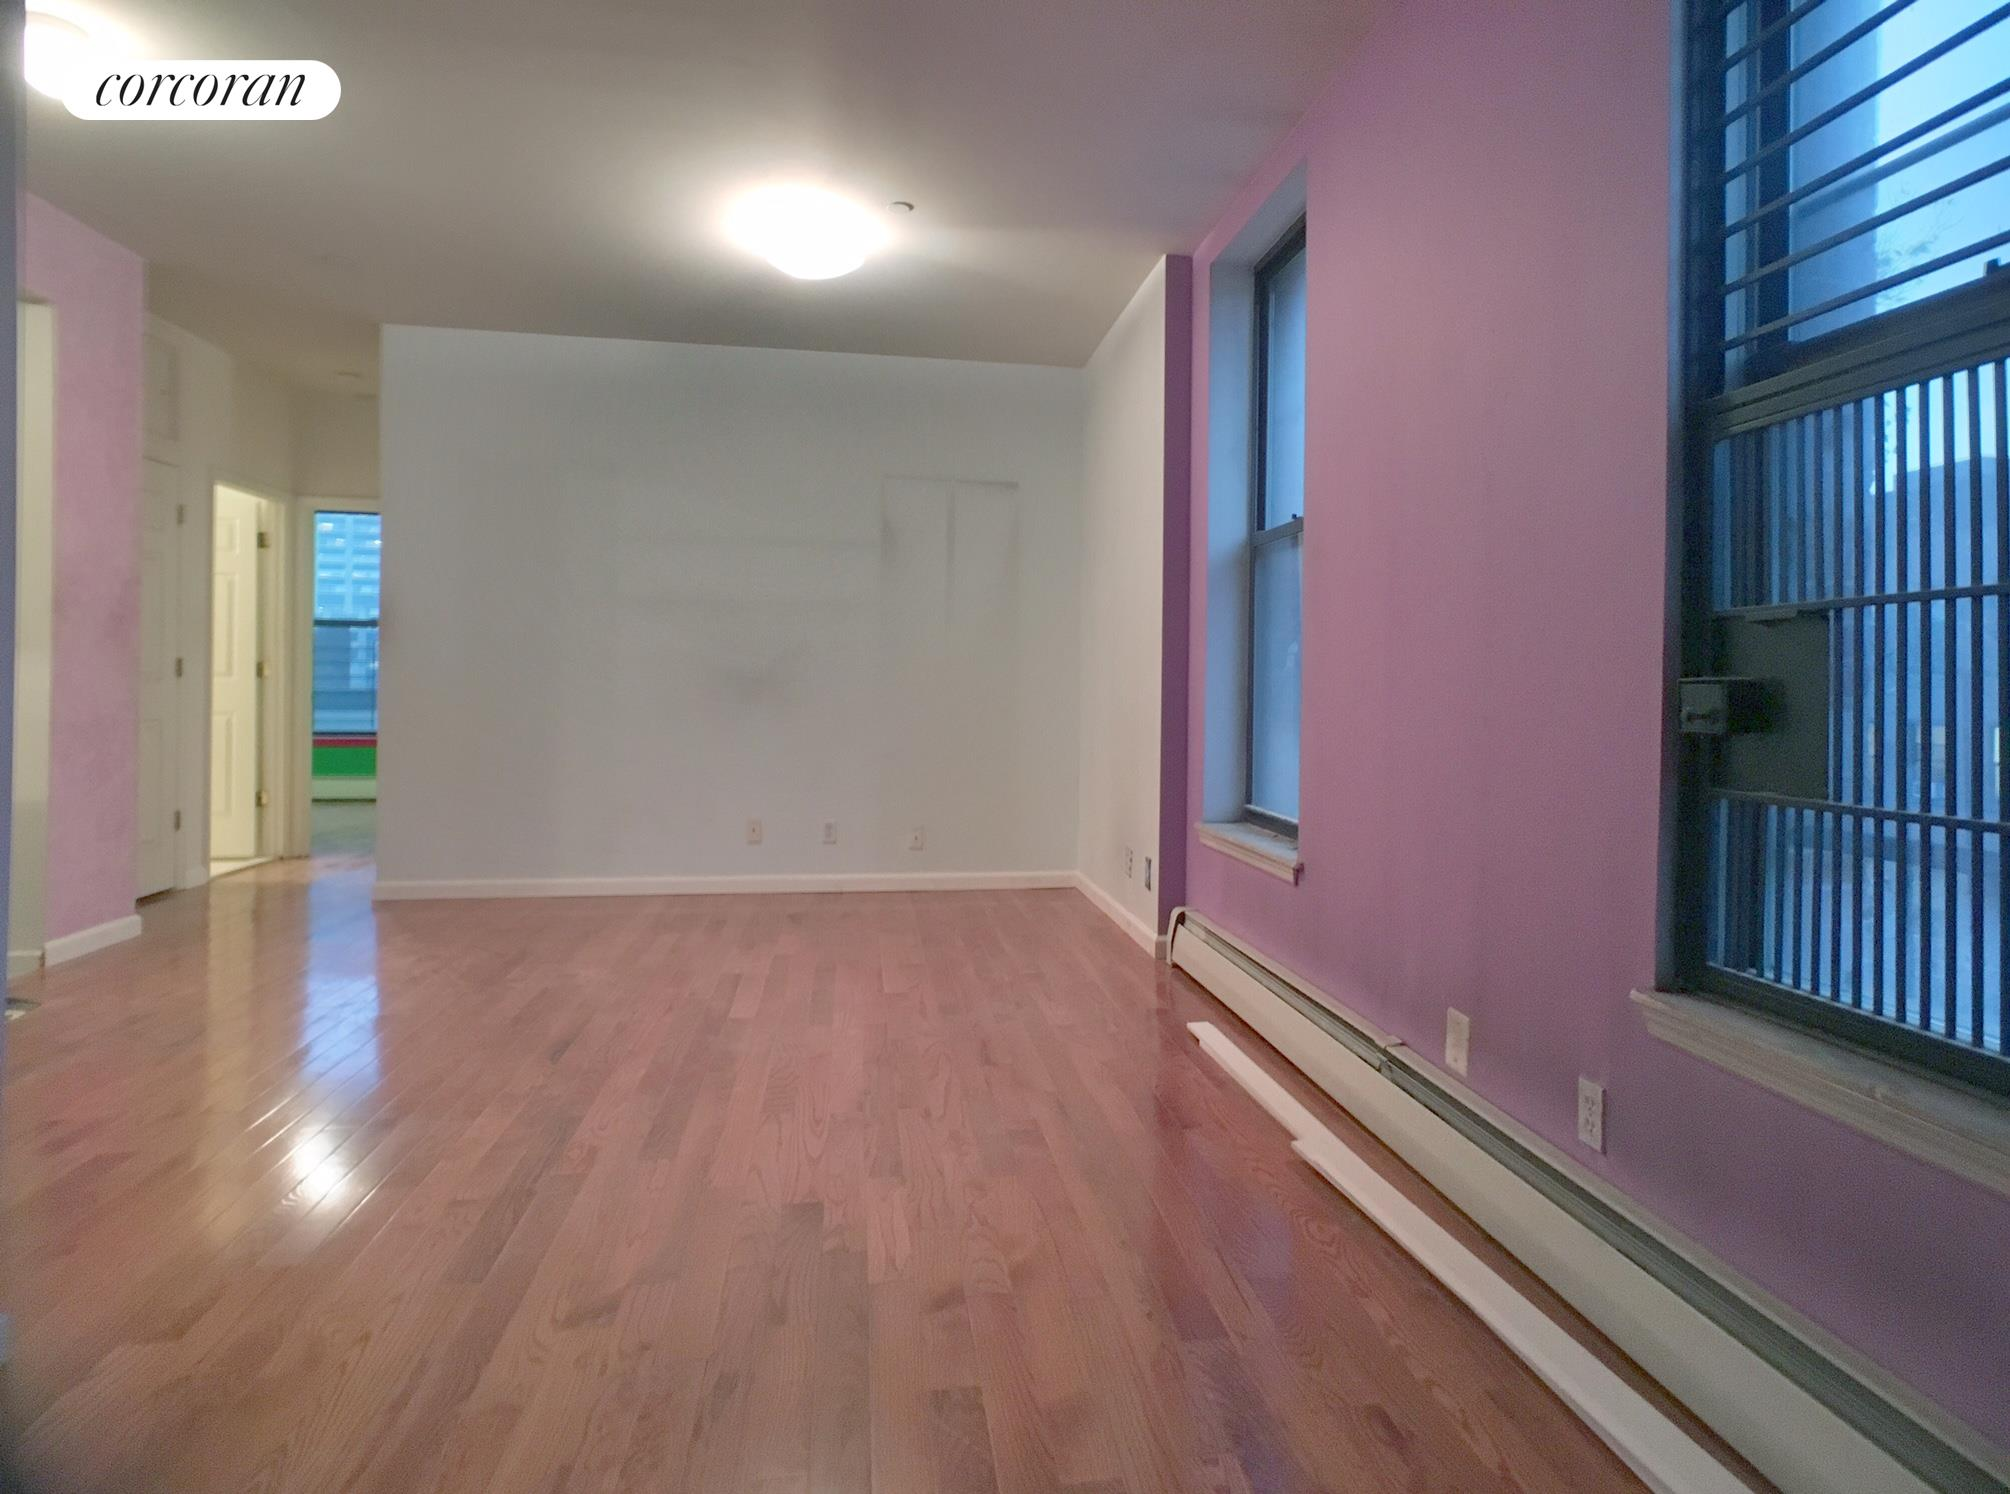 199 West 134th Street, 3A, Open Living/Dining Room